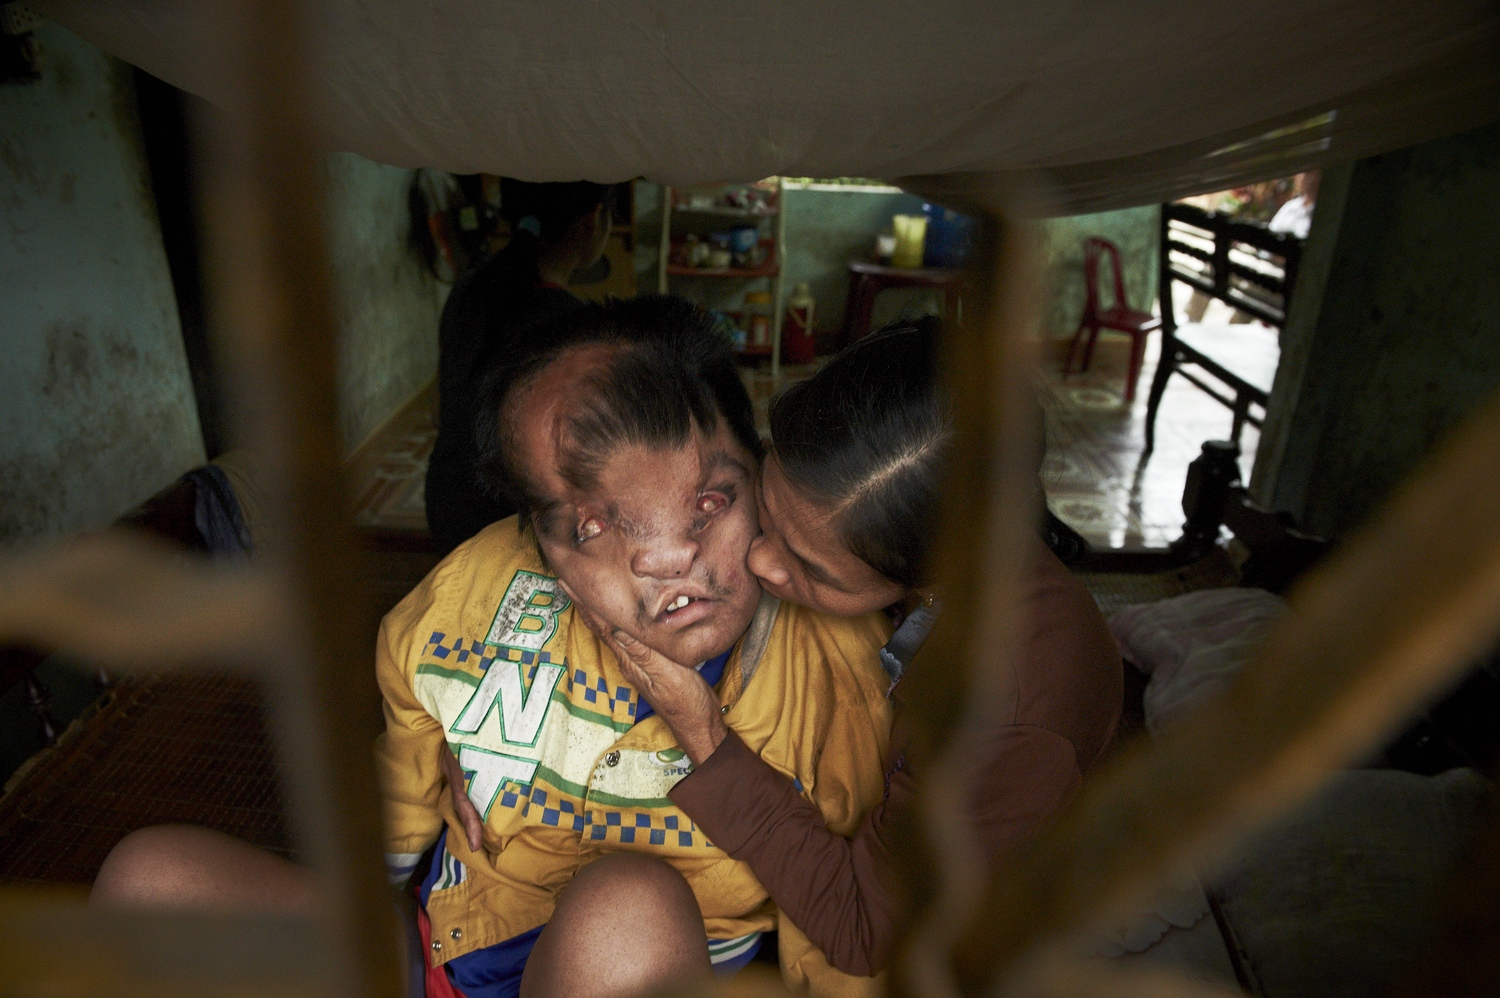 Son of a War veteran, Doduc Duyen (Born in 1997) has eyes that cannot see, ears that cannot hear, and a body he cannot control. He was born with a face‐sized tumor on his head and had it surgically removed when he was 18 months old with the financial aid of the Taiwanese NGO. The tumor is growing back again, but this time is accompanied with severe paralysis and epilepsy symptoms. His only hope in life is his mother's unconditional motherly love. The War brought destruction on generations after generations for mankind. The mother's love for her child is the only defense for this mother and son. (Dec. 8, 2012)